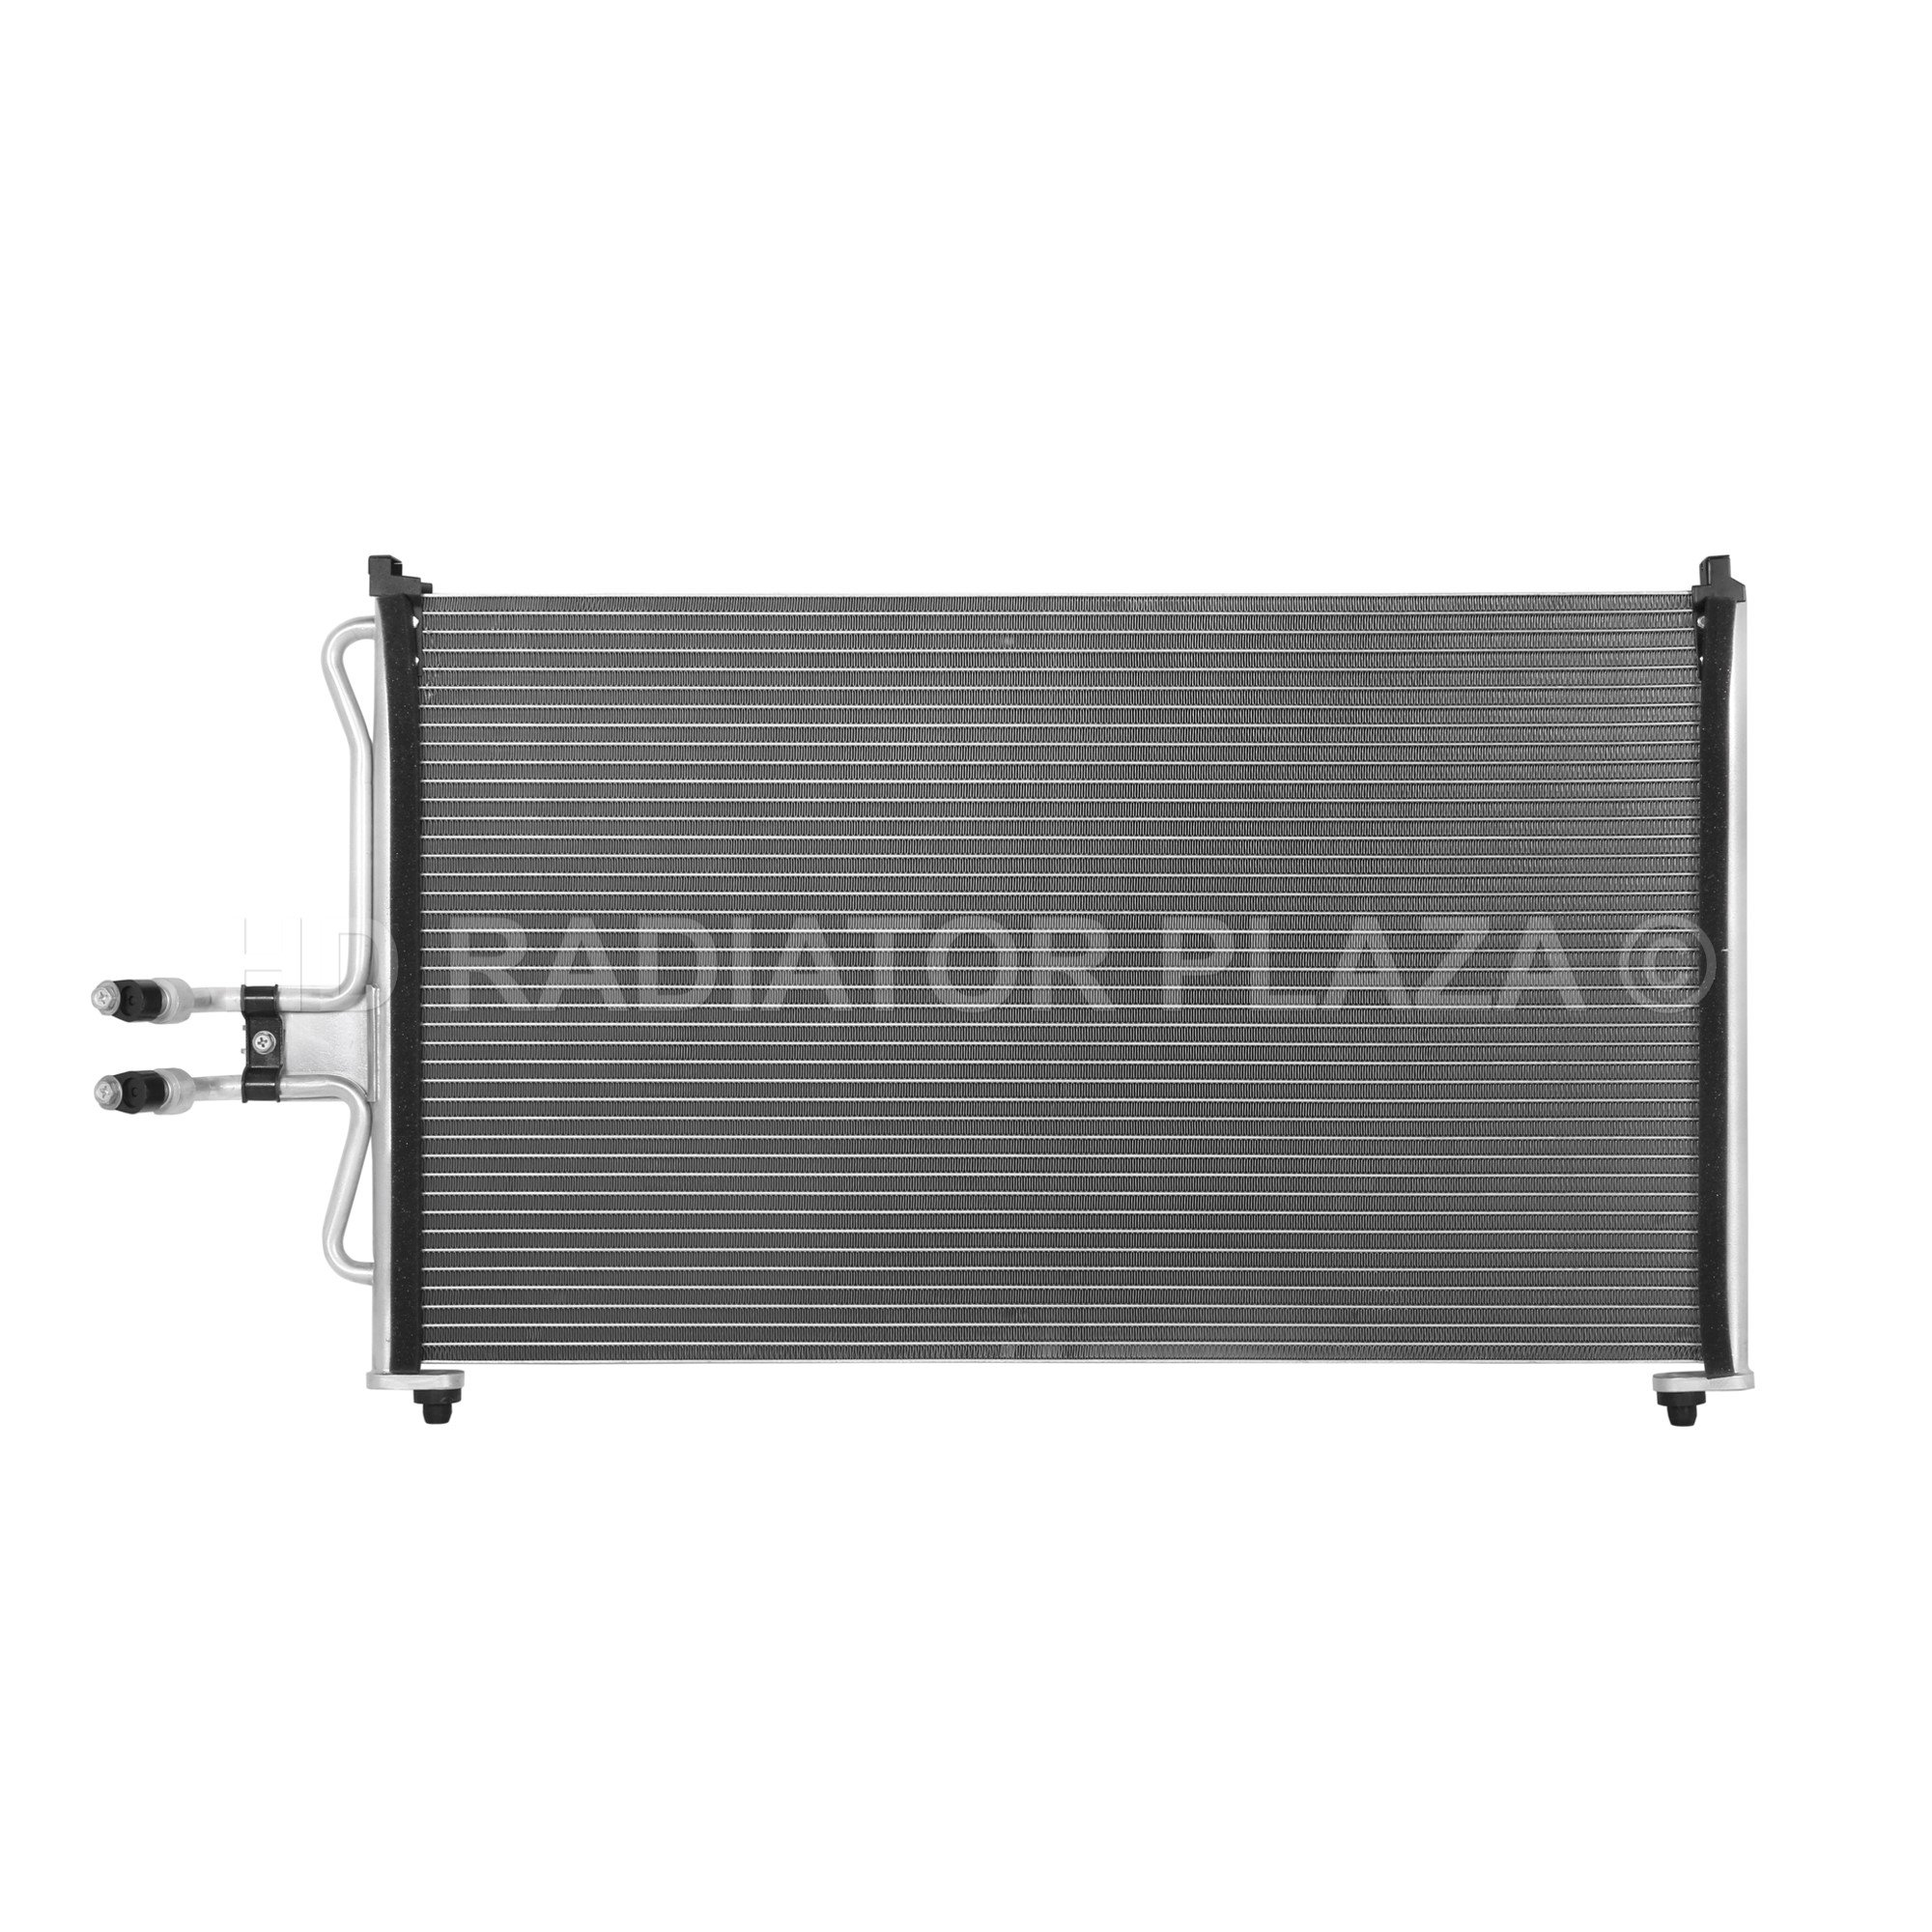 AC Condensers for 01-04 Ford Escape / Mazda Tribute, 2.0L l4 / 3.0L V6